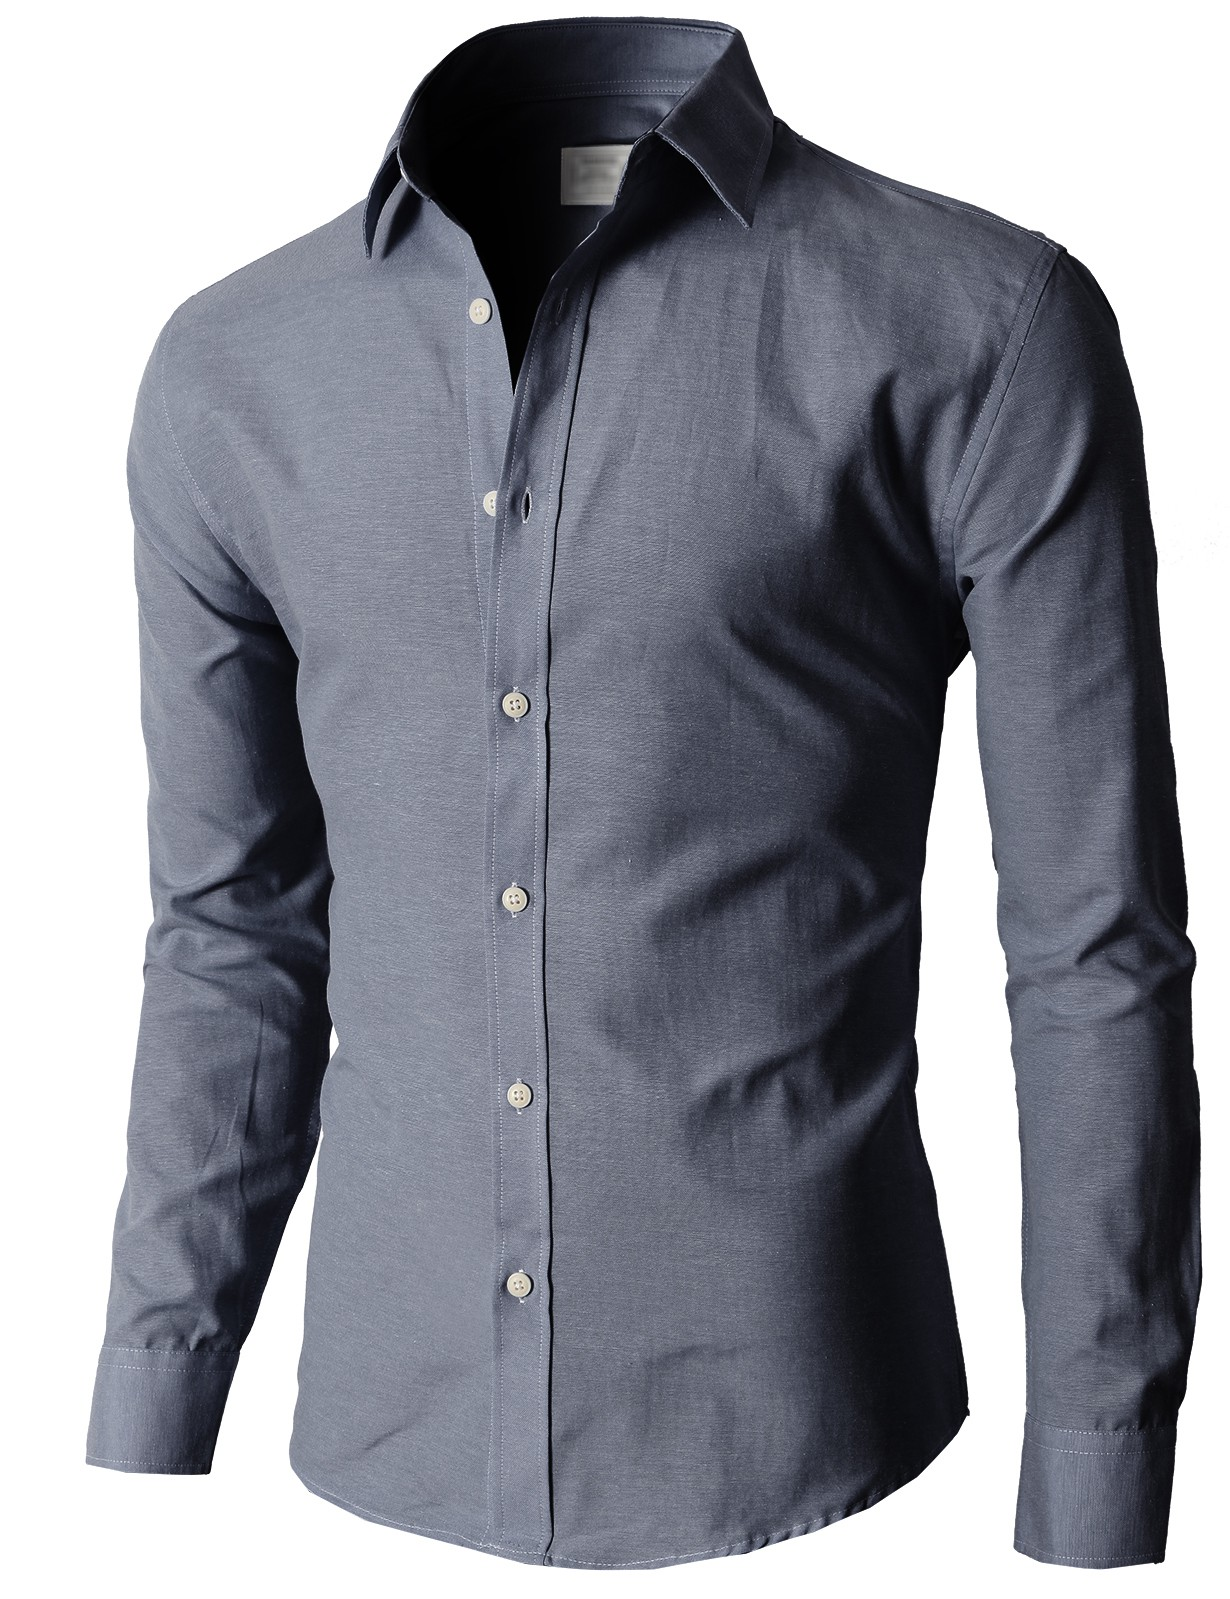 tuck in or tuck out men shirt 3